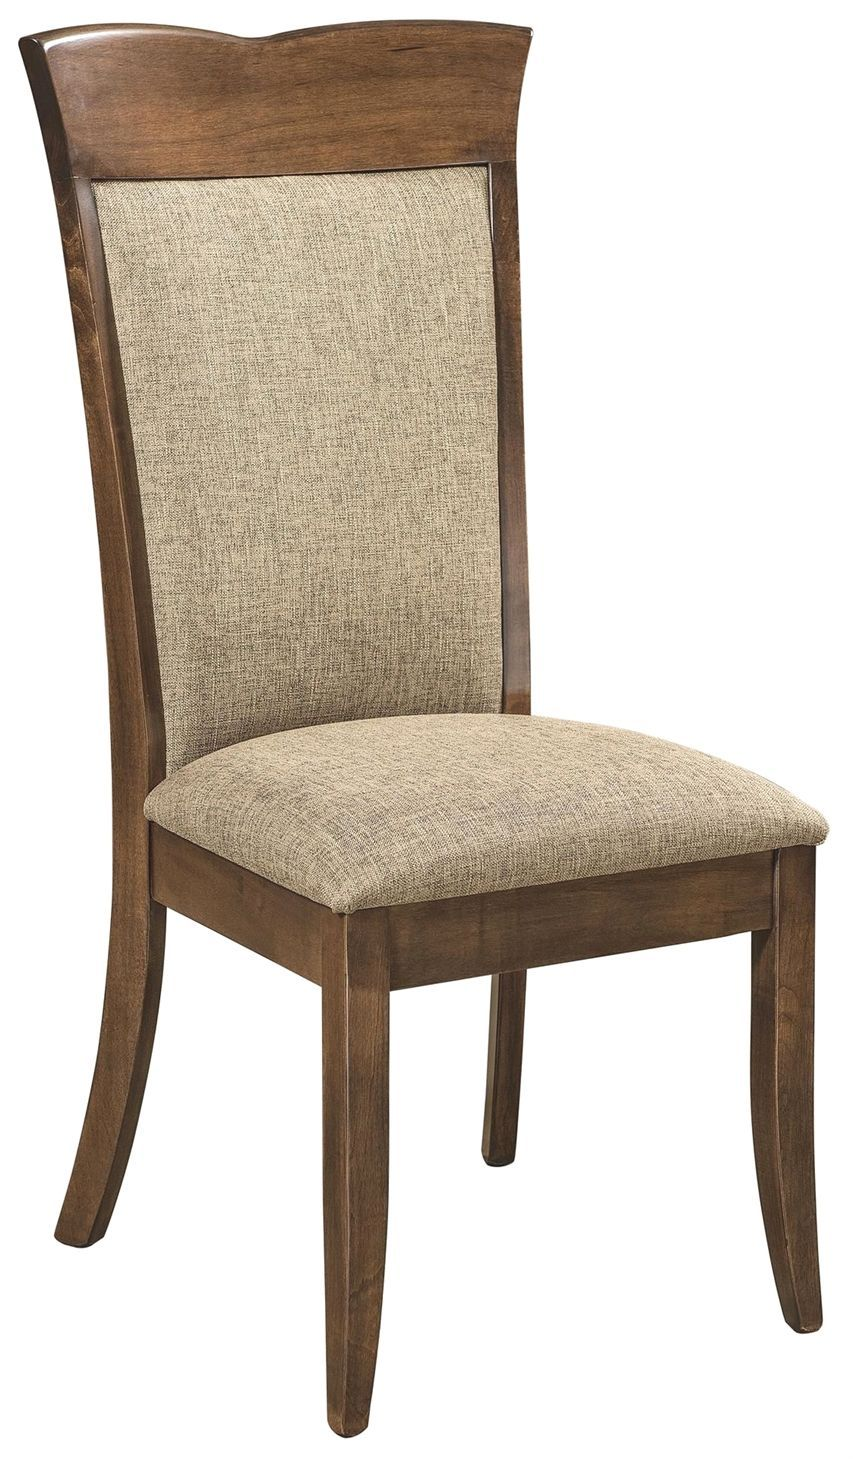 Amish Santa Fe Upholstered Dining Room Chair Dining Chairs